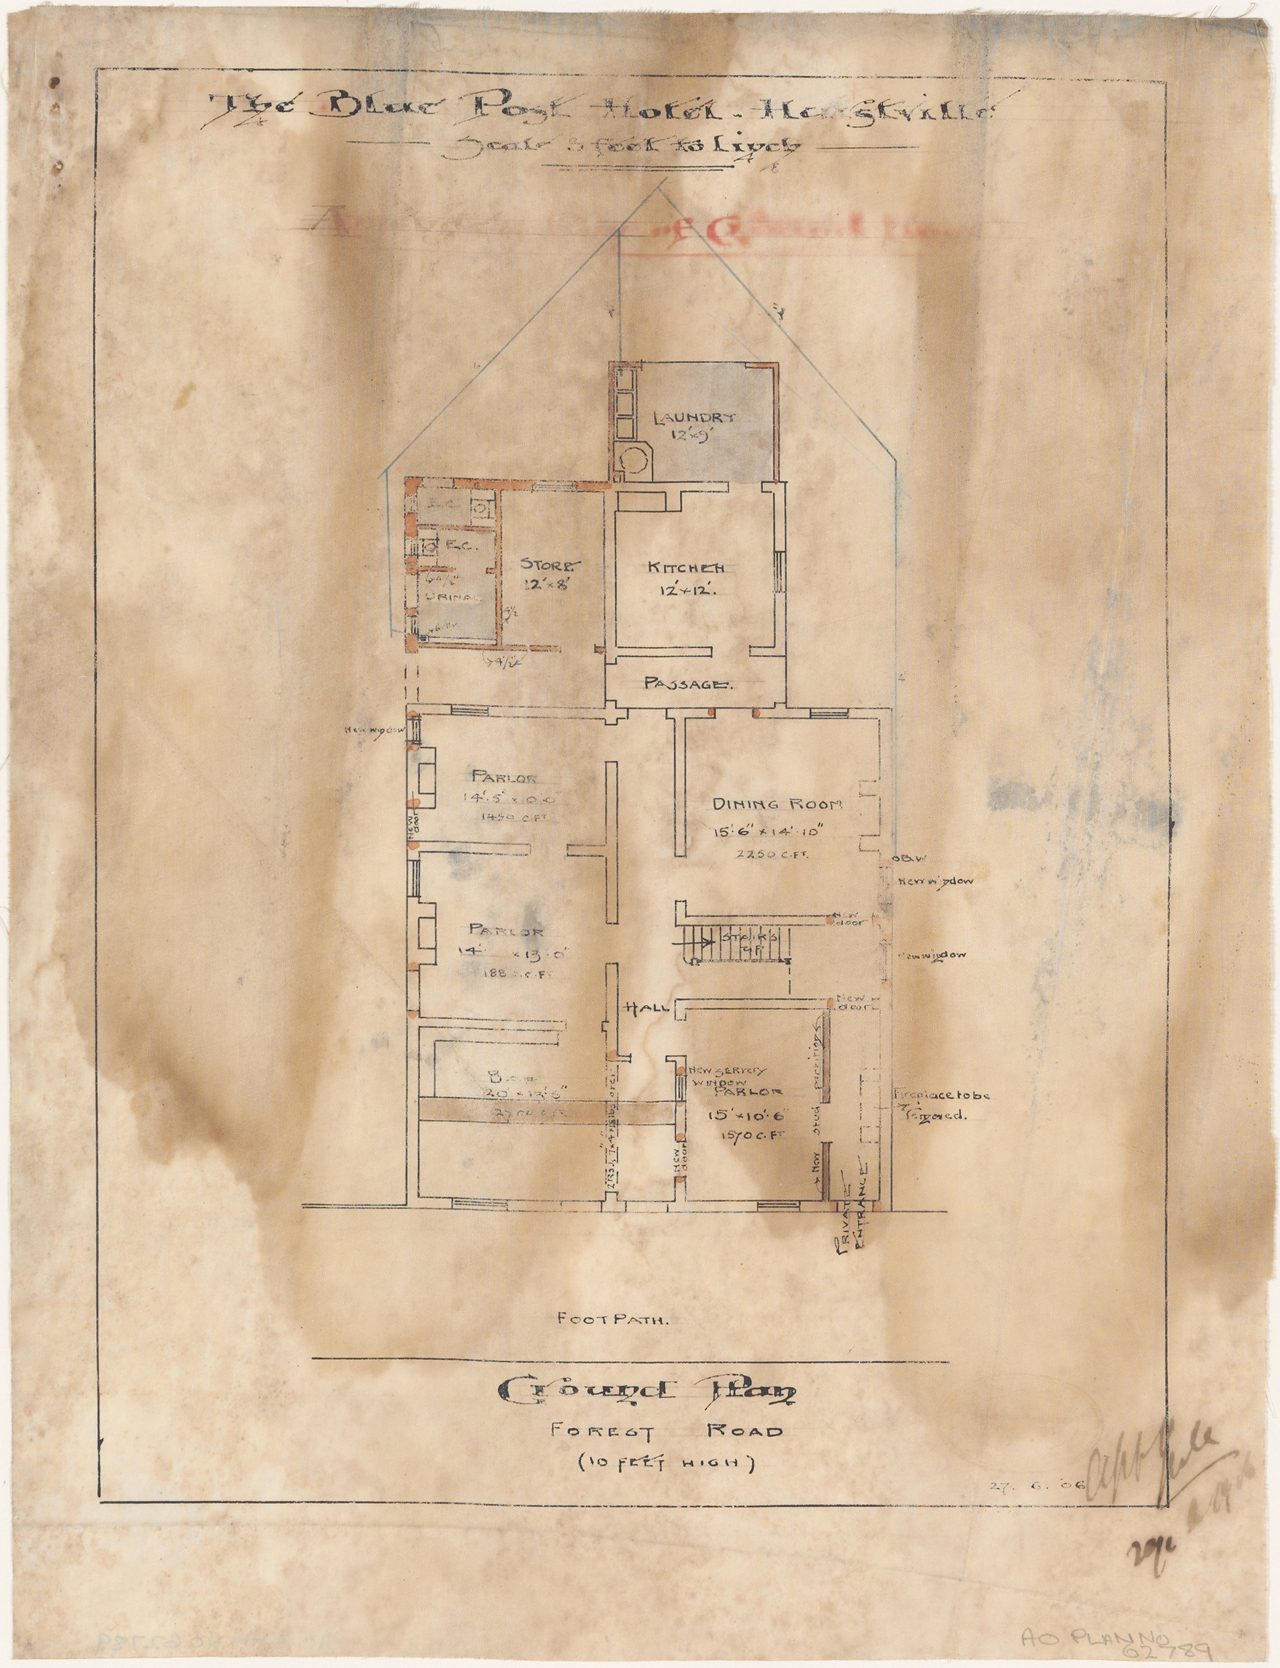 Blue Post Hotel, Forest Road, Hurstville, Amended plan of ground floor, Architect M B Halliagan, Equitable Building, George Street, Signed 29 June 1906